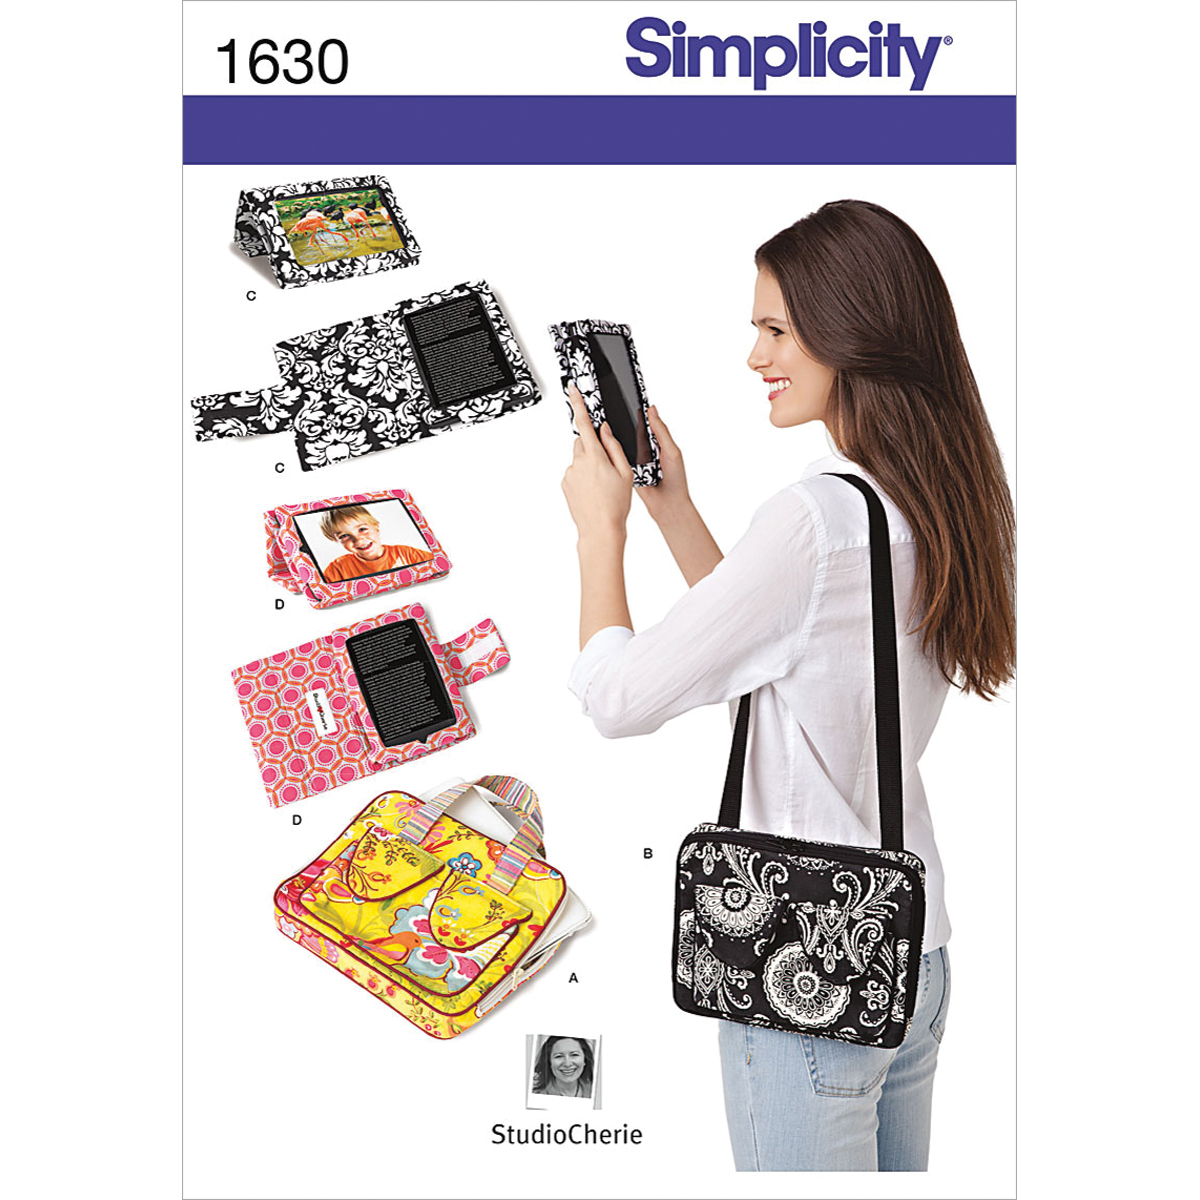 Simplicity Pattern 1630OS E-Book Covers & Tablet Carry Case